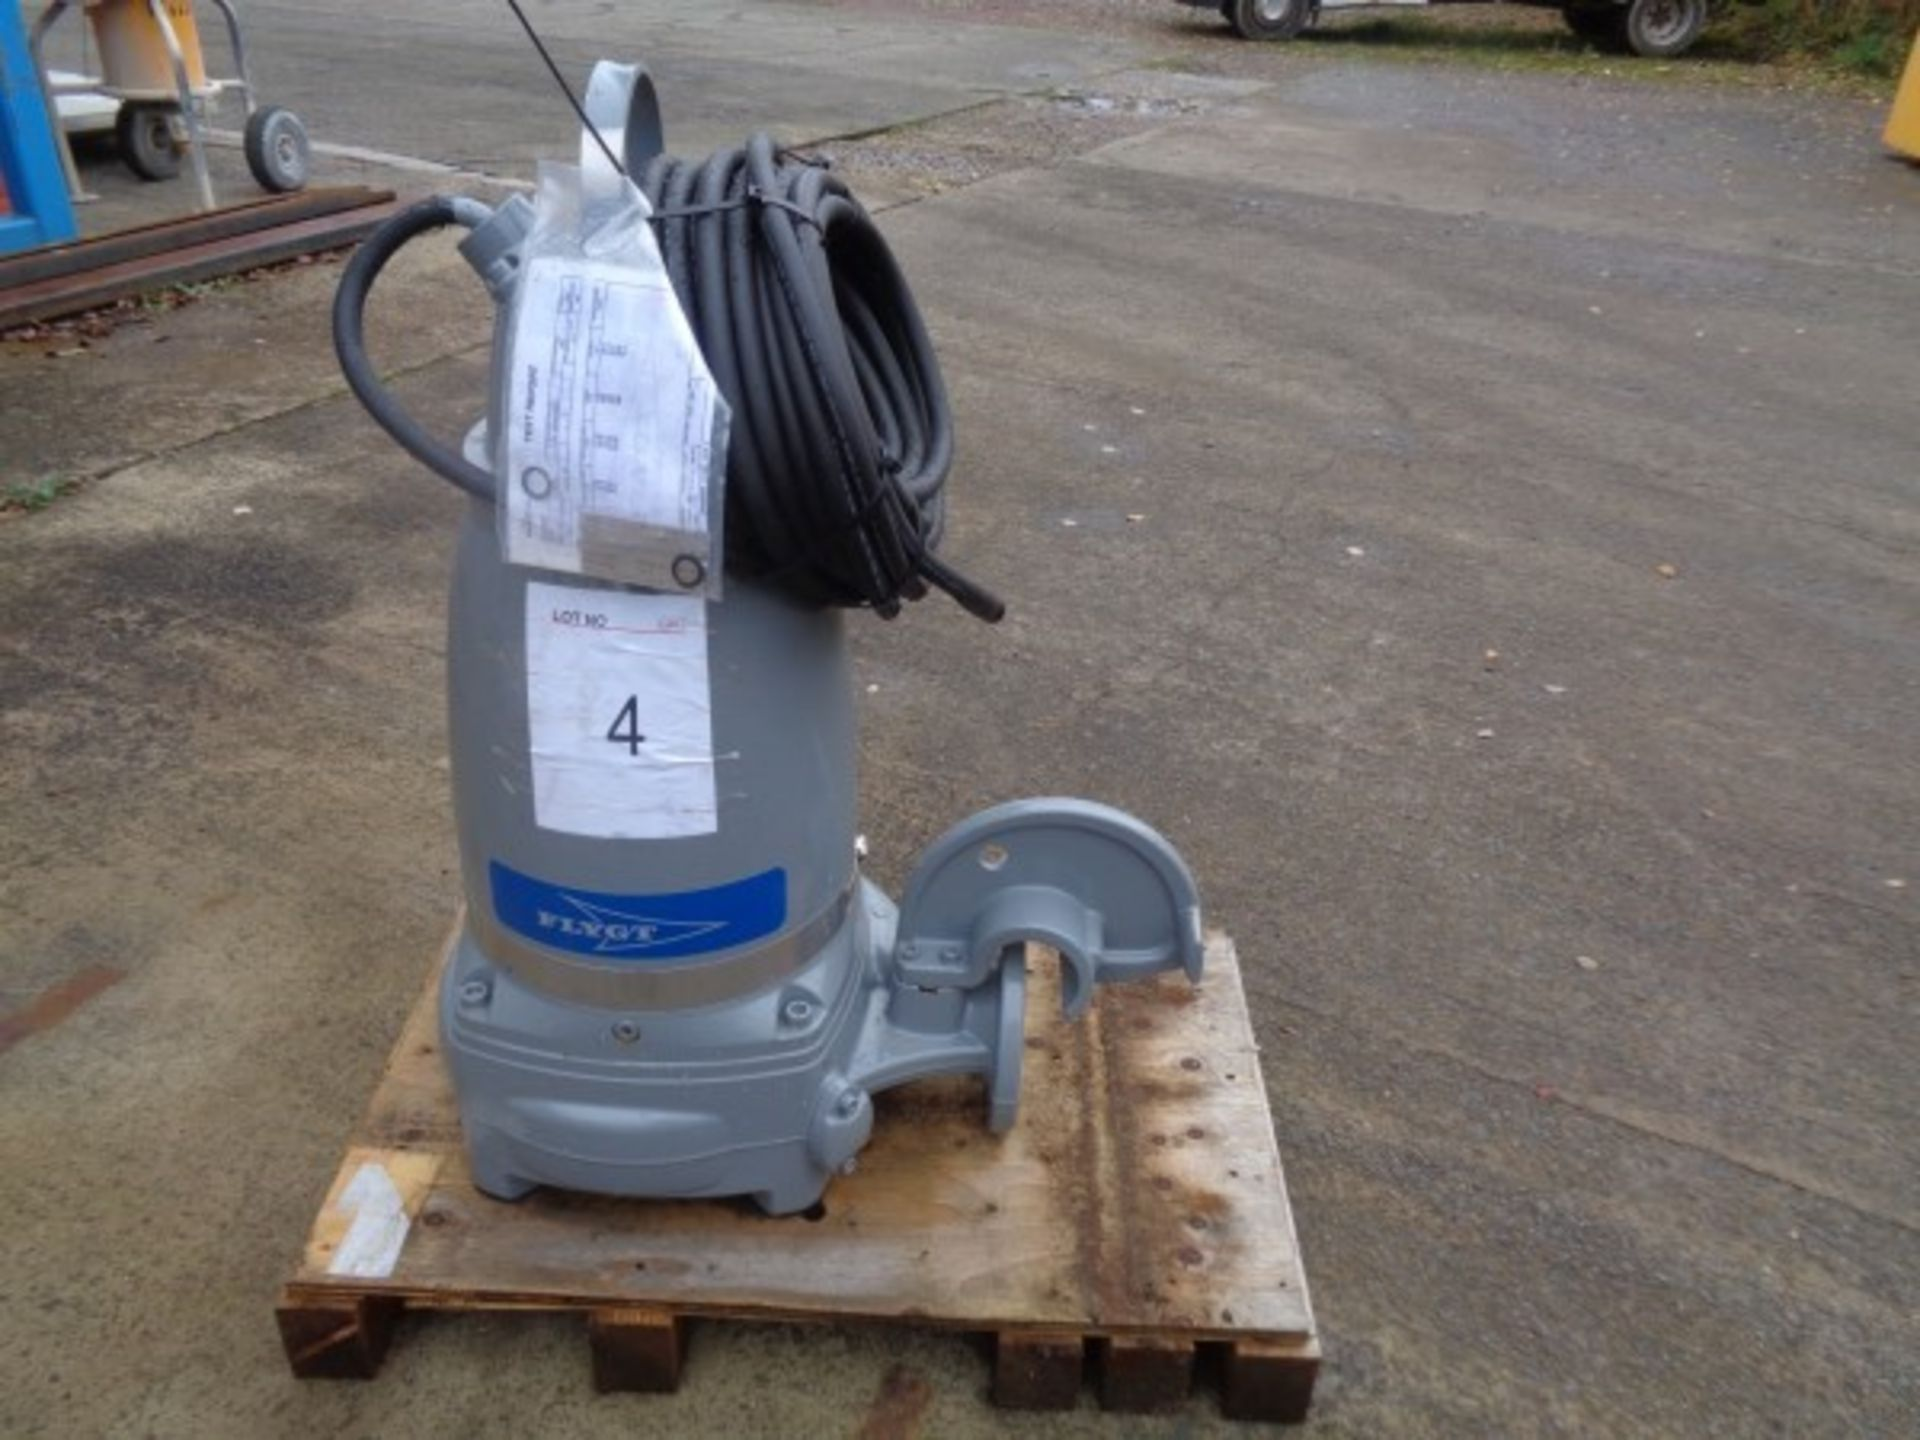 Flygt Xylem type 3171.181 submersible pump, serial no 1910024